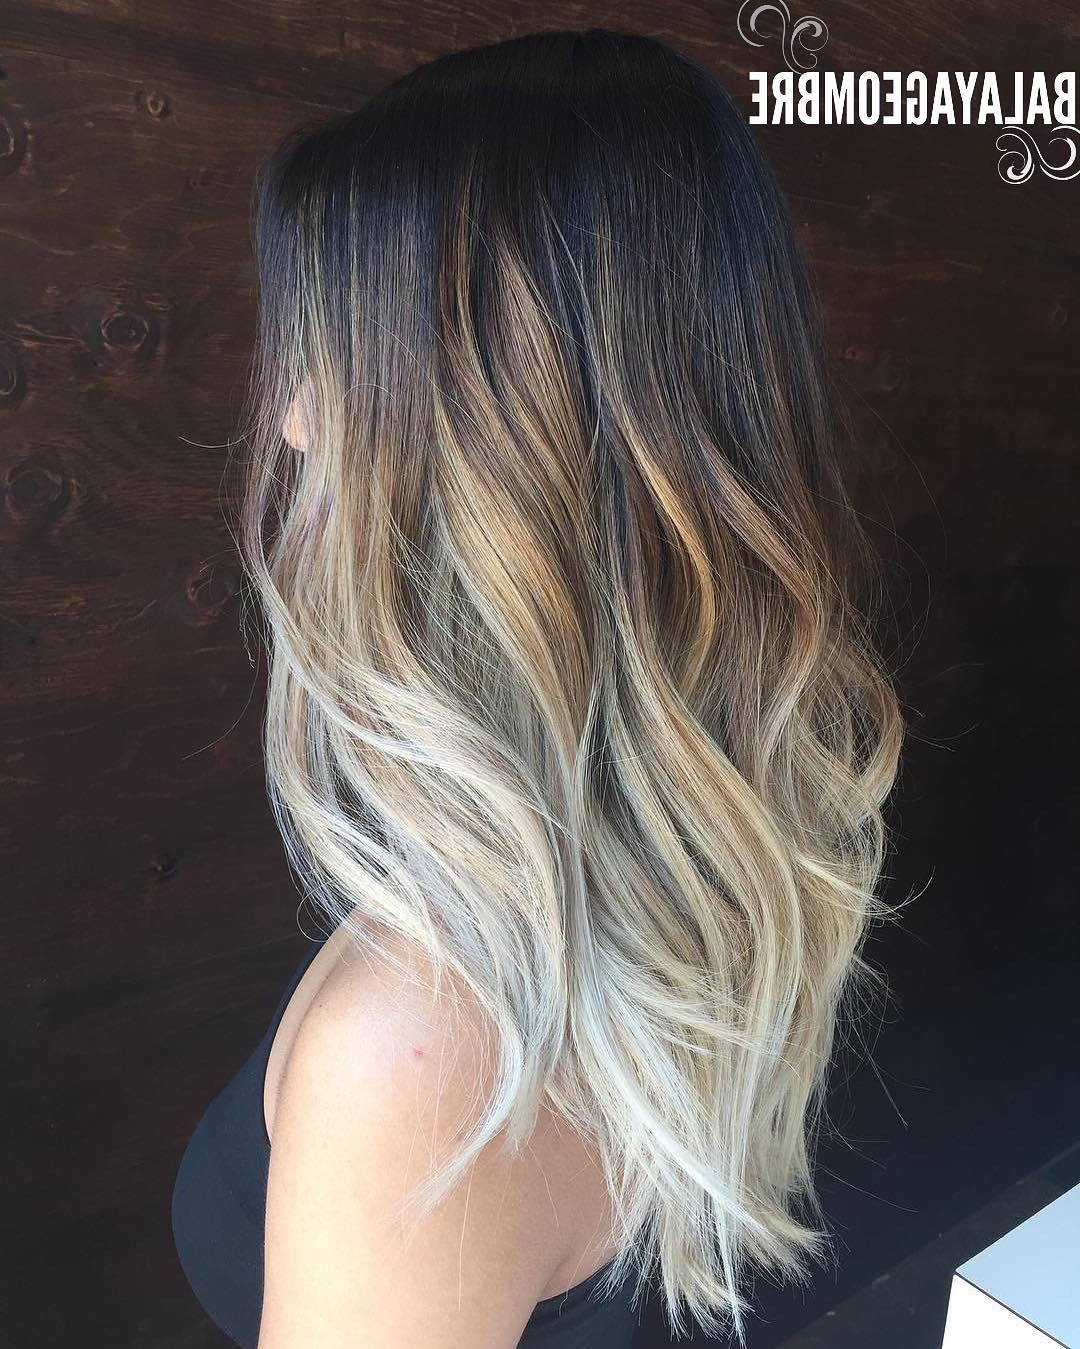 Favorite Long Waves Hairstyles With Subtle Highlights Pertaining To 10 Gorgeous Long Wavy Perm Hairstyles, Long Hair Styles (View 17 of 20)